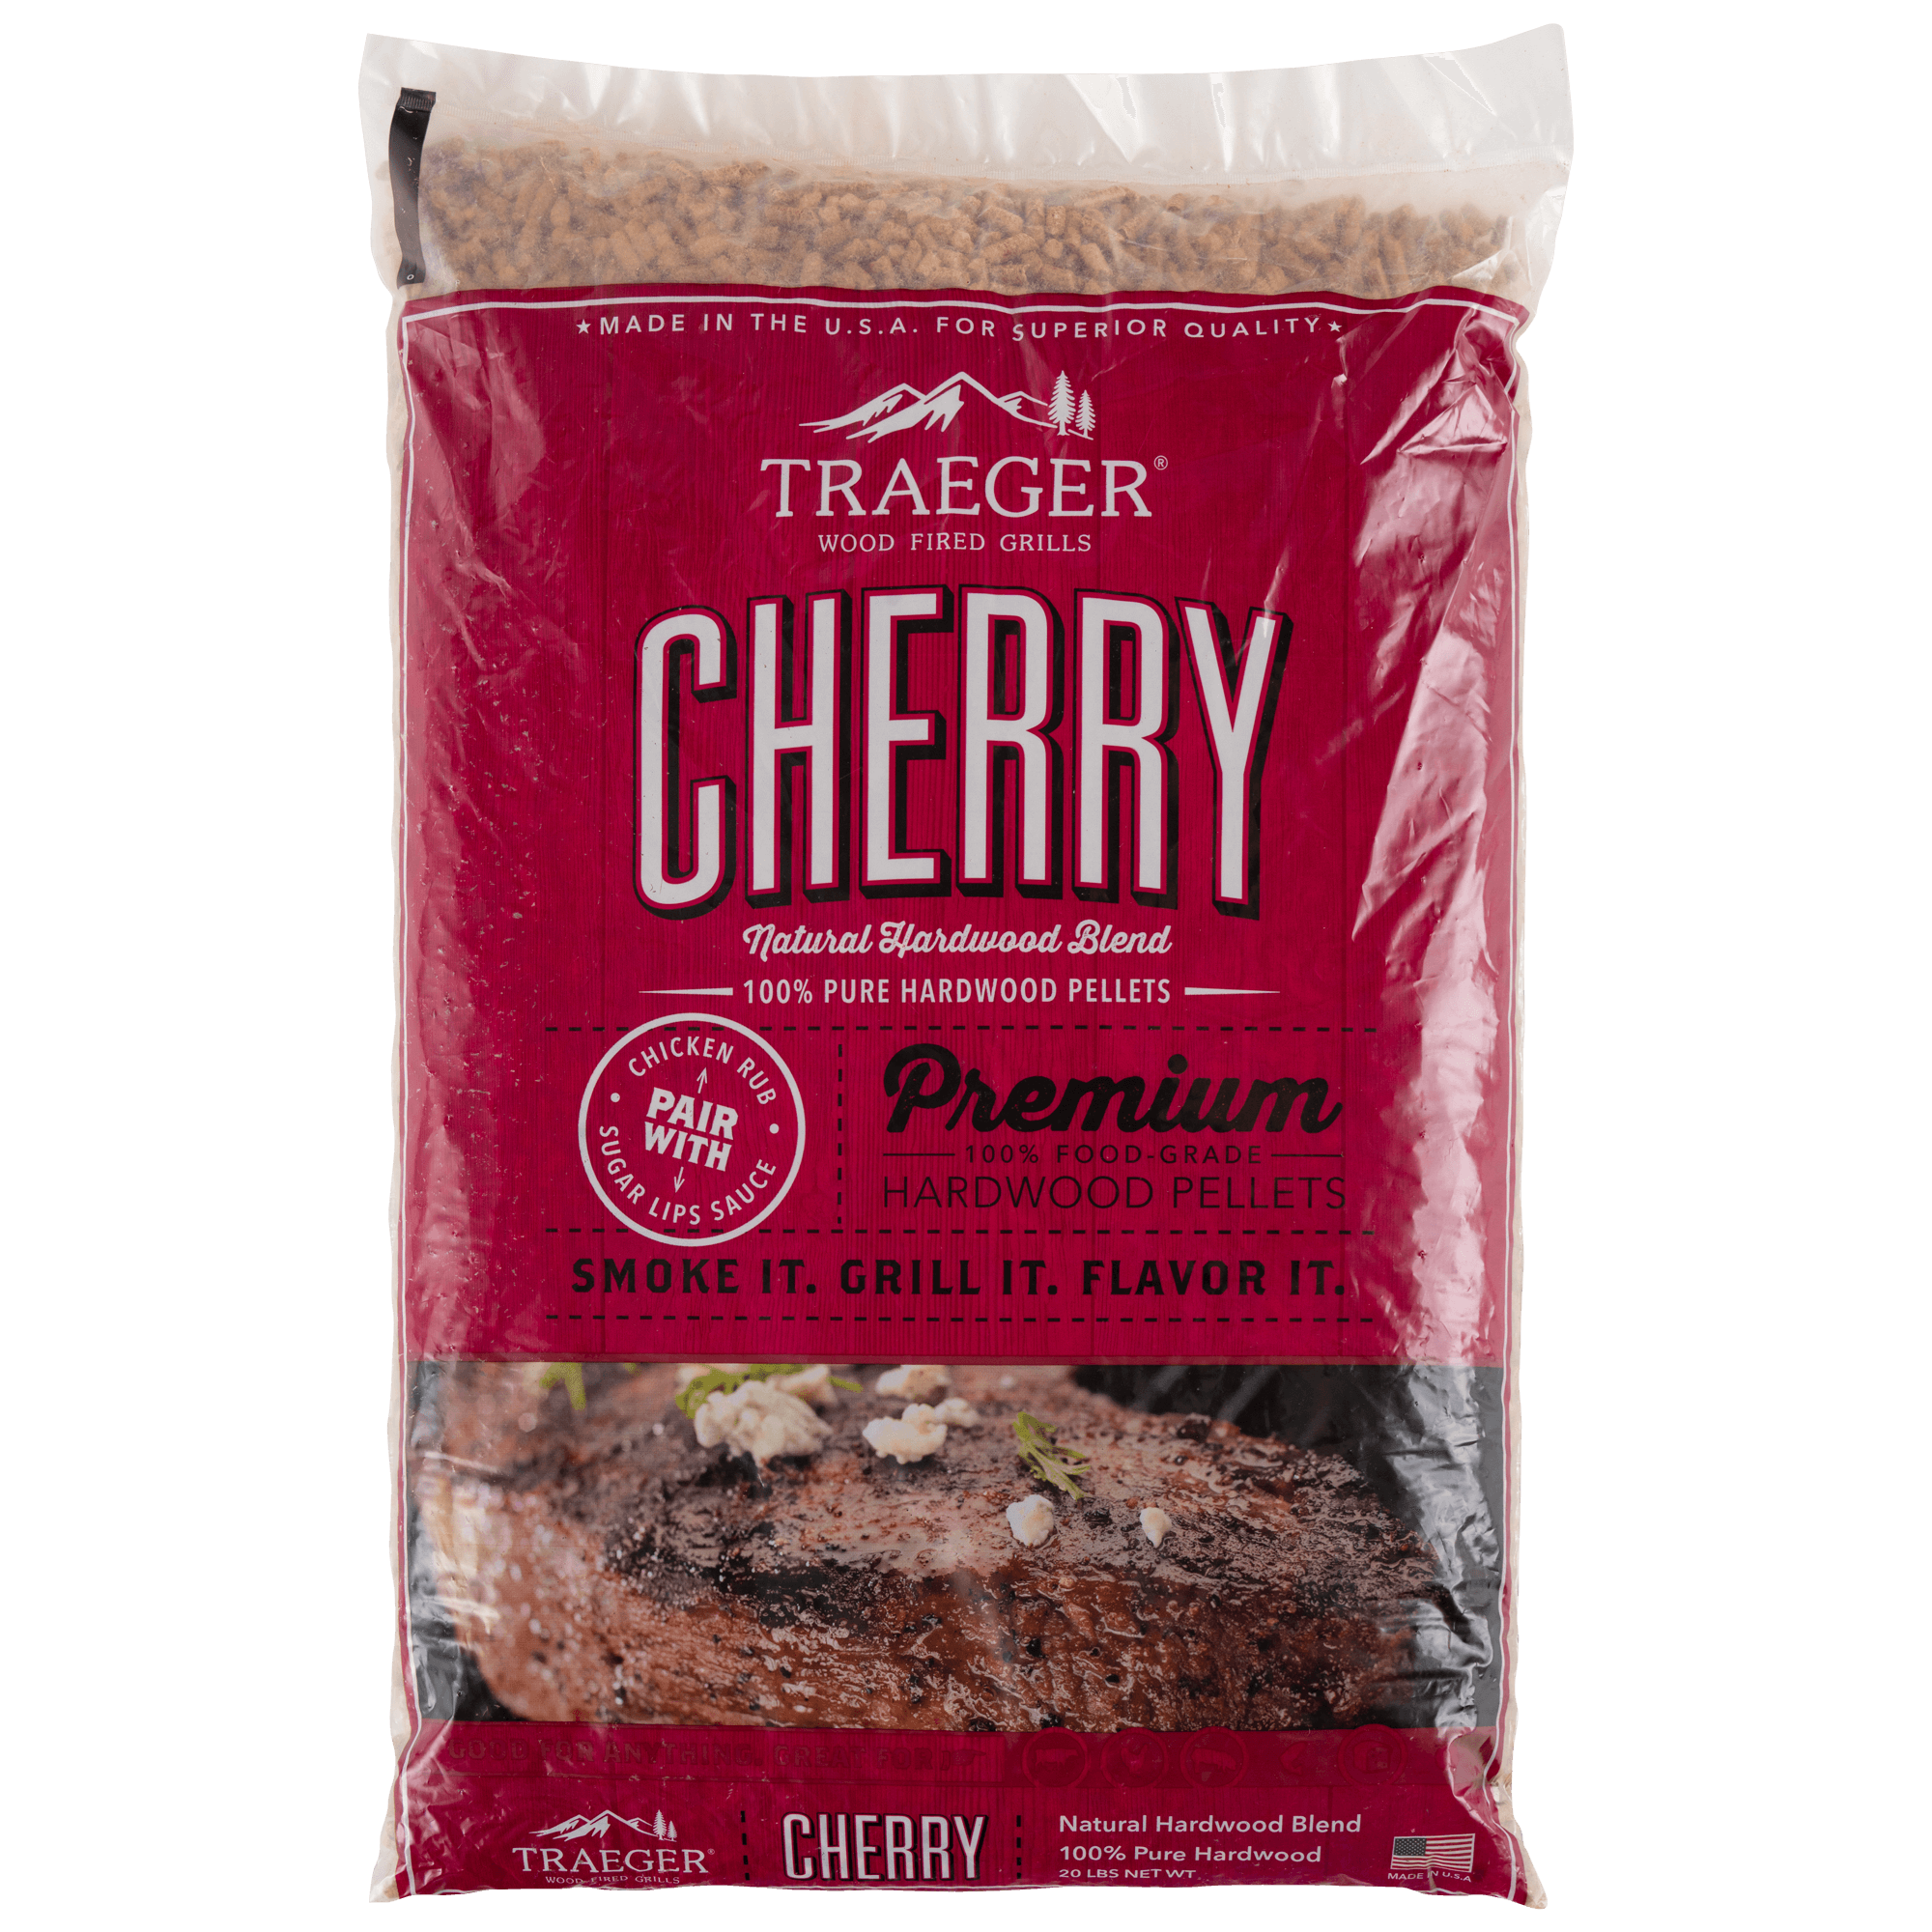 Traeger Cherry BBQ Wood Pellets, 20-lb